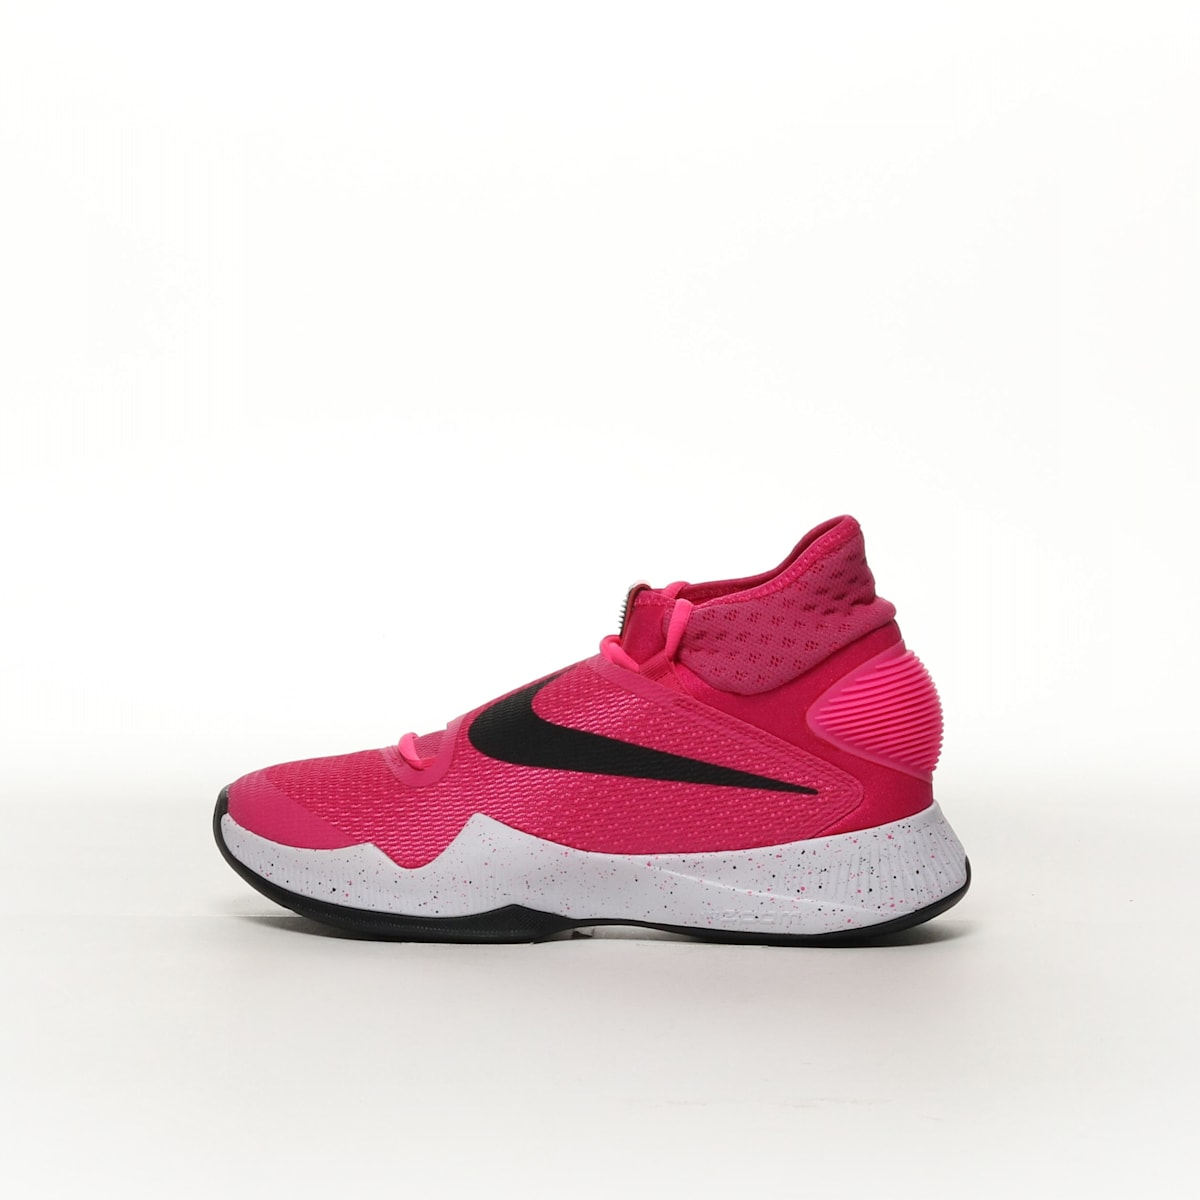 half off 2dc1c 56cea Men's Nike Zoom HyperRev 2016 Basketball Shoe - PINK BLAST/BLACK ...